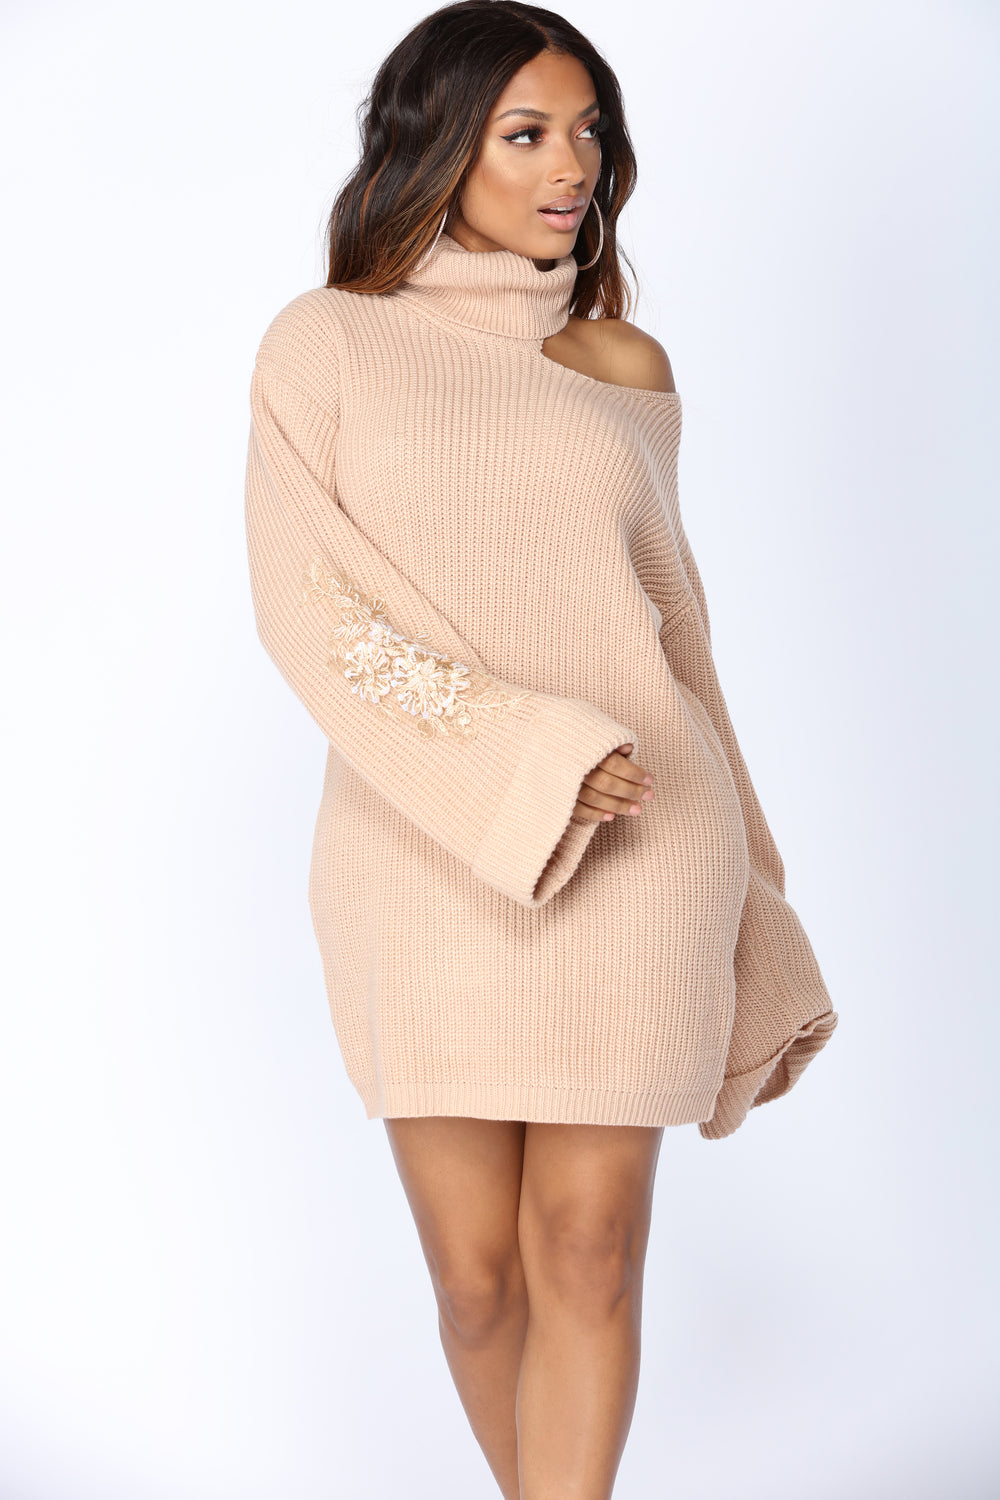 Winter Frost Sweater - Taupe